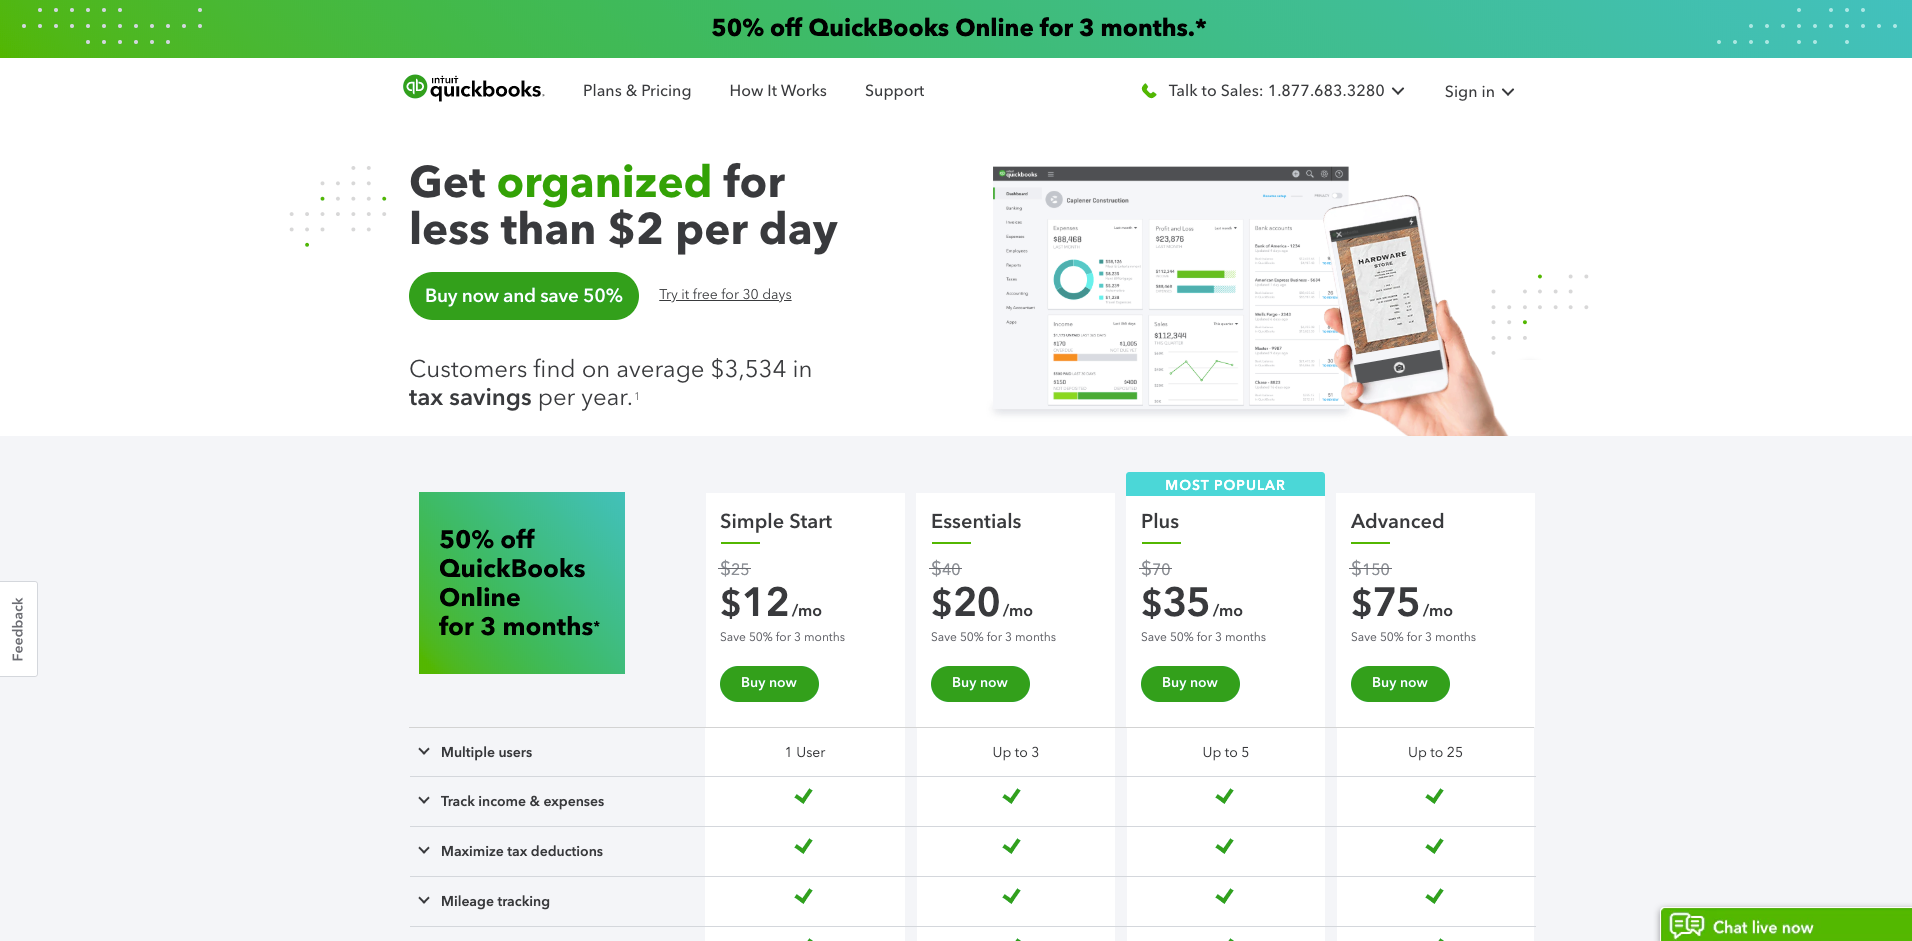 Quickbooks website homepage screenshot